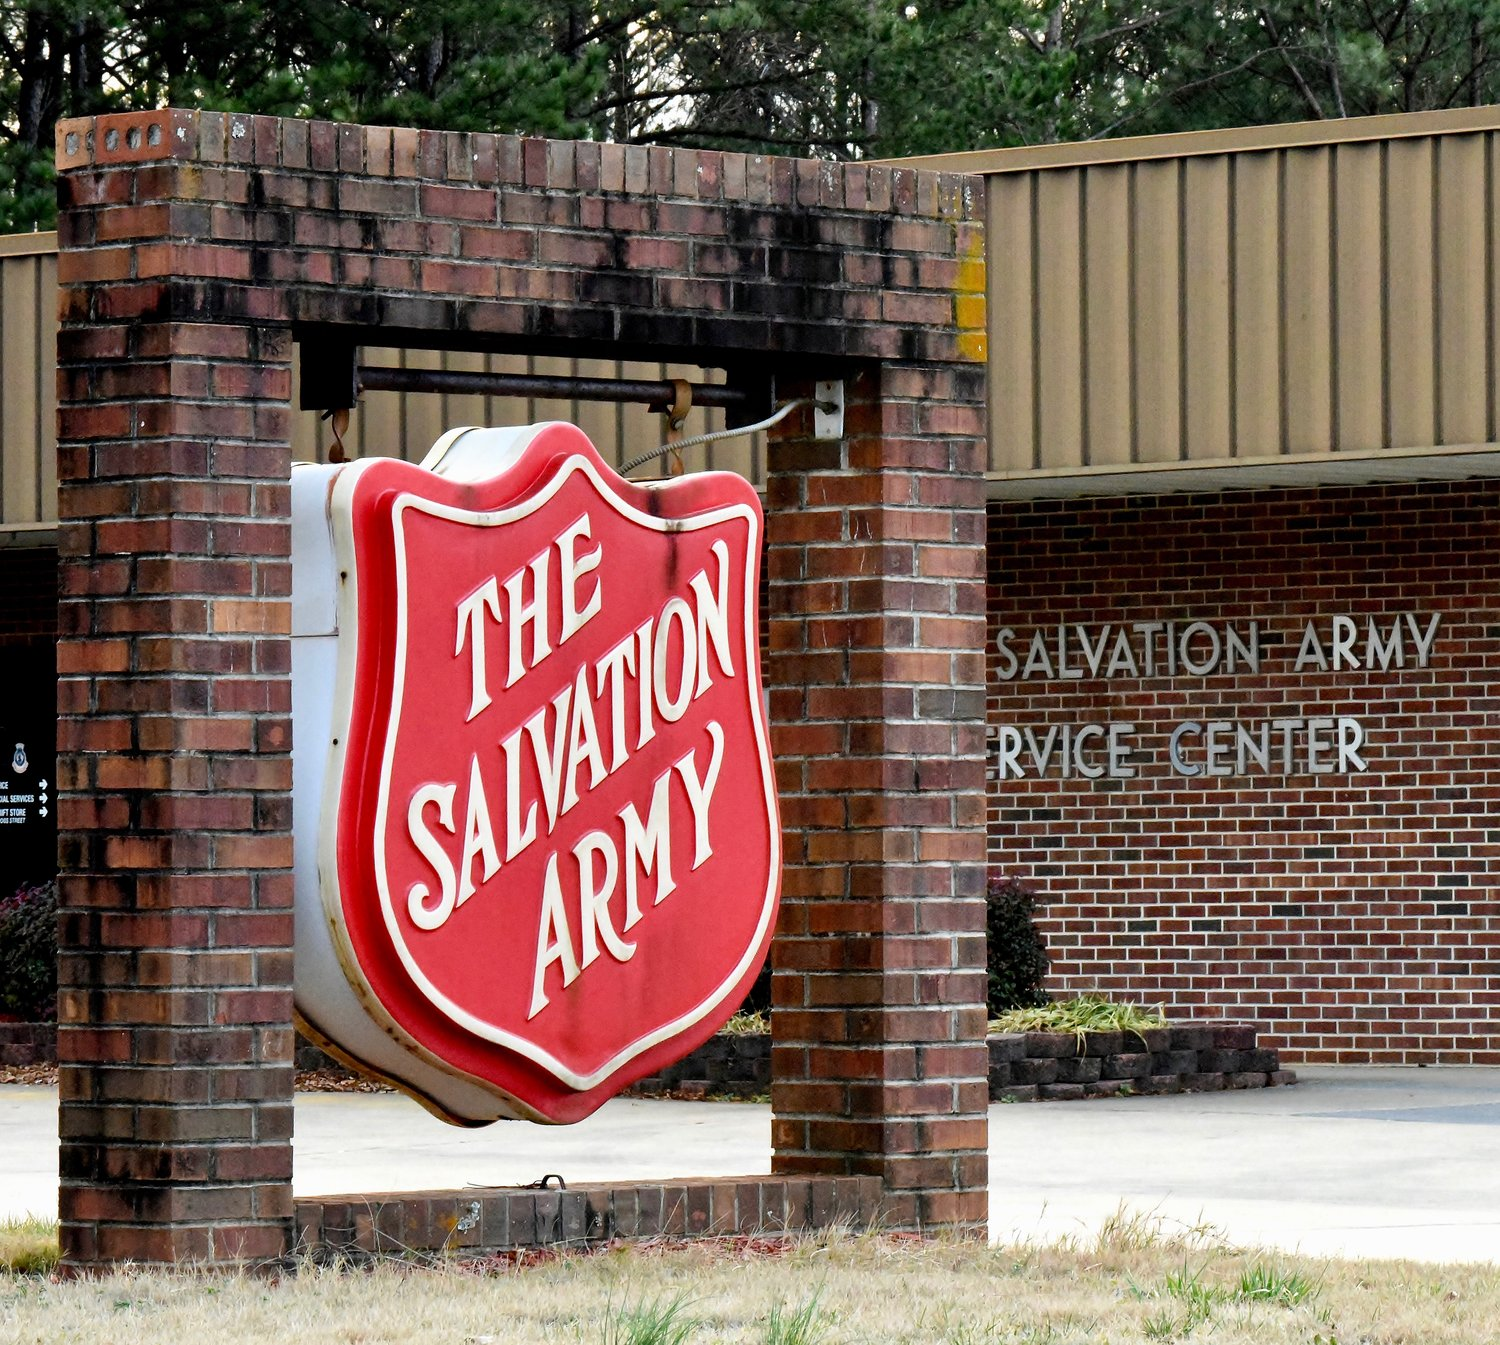 The Salvation Army's social service office is located at 16 Felton Place in Cartersville.